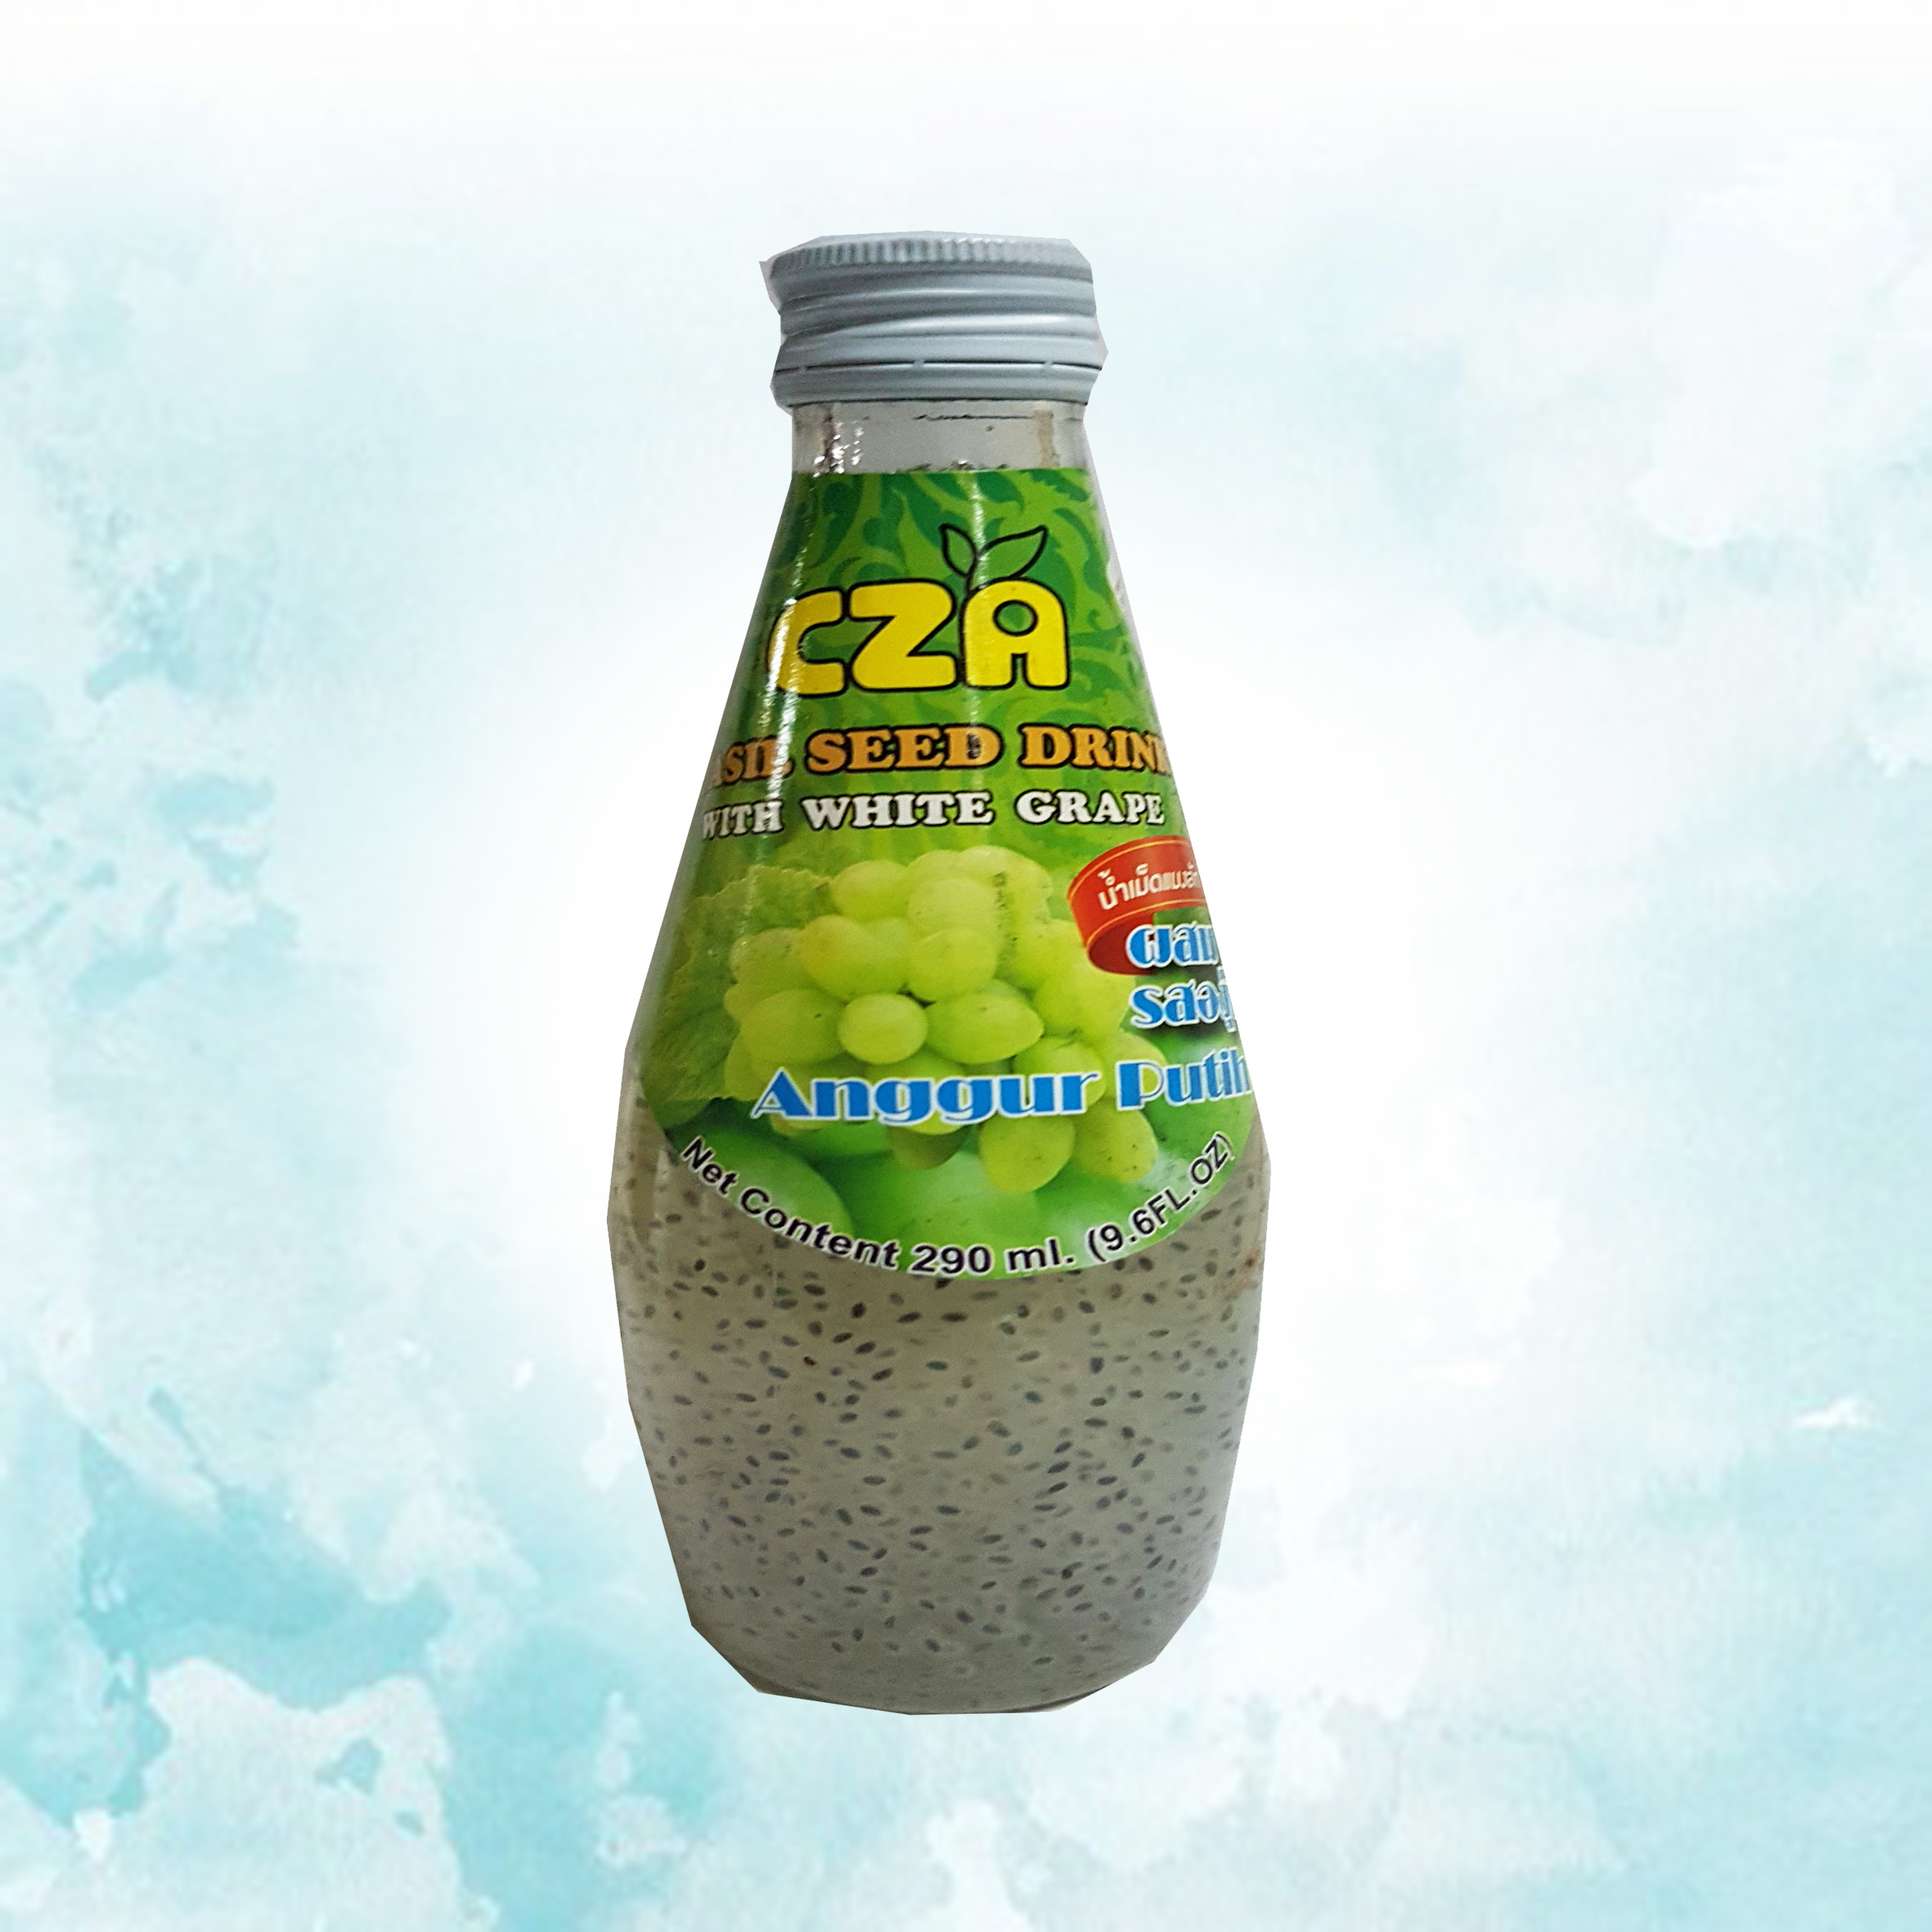 CZA Basil Seed with White Grape BG.jpg